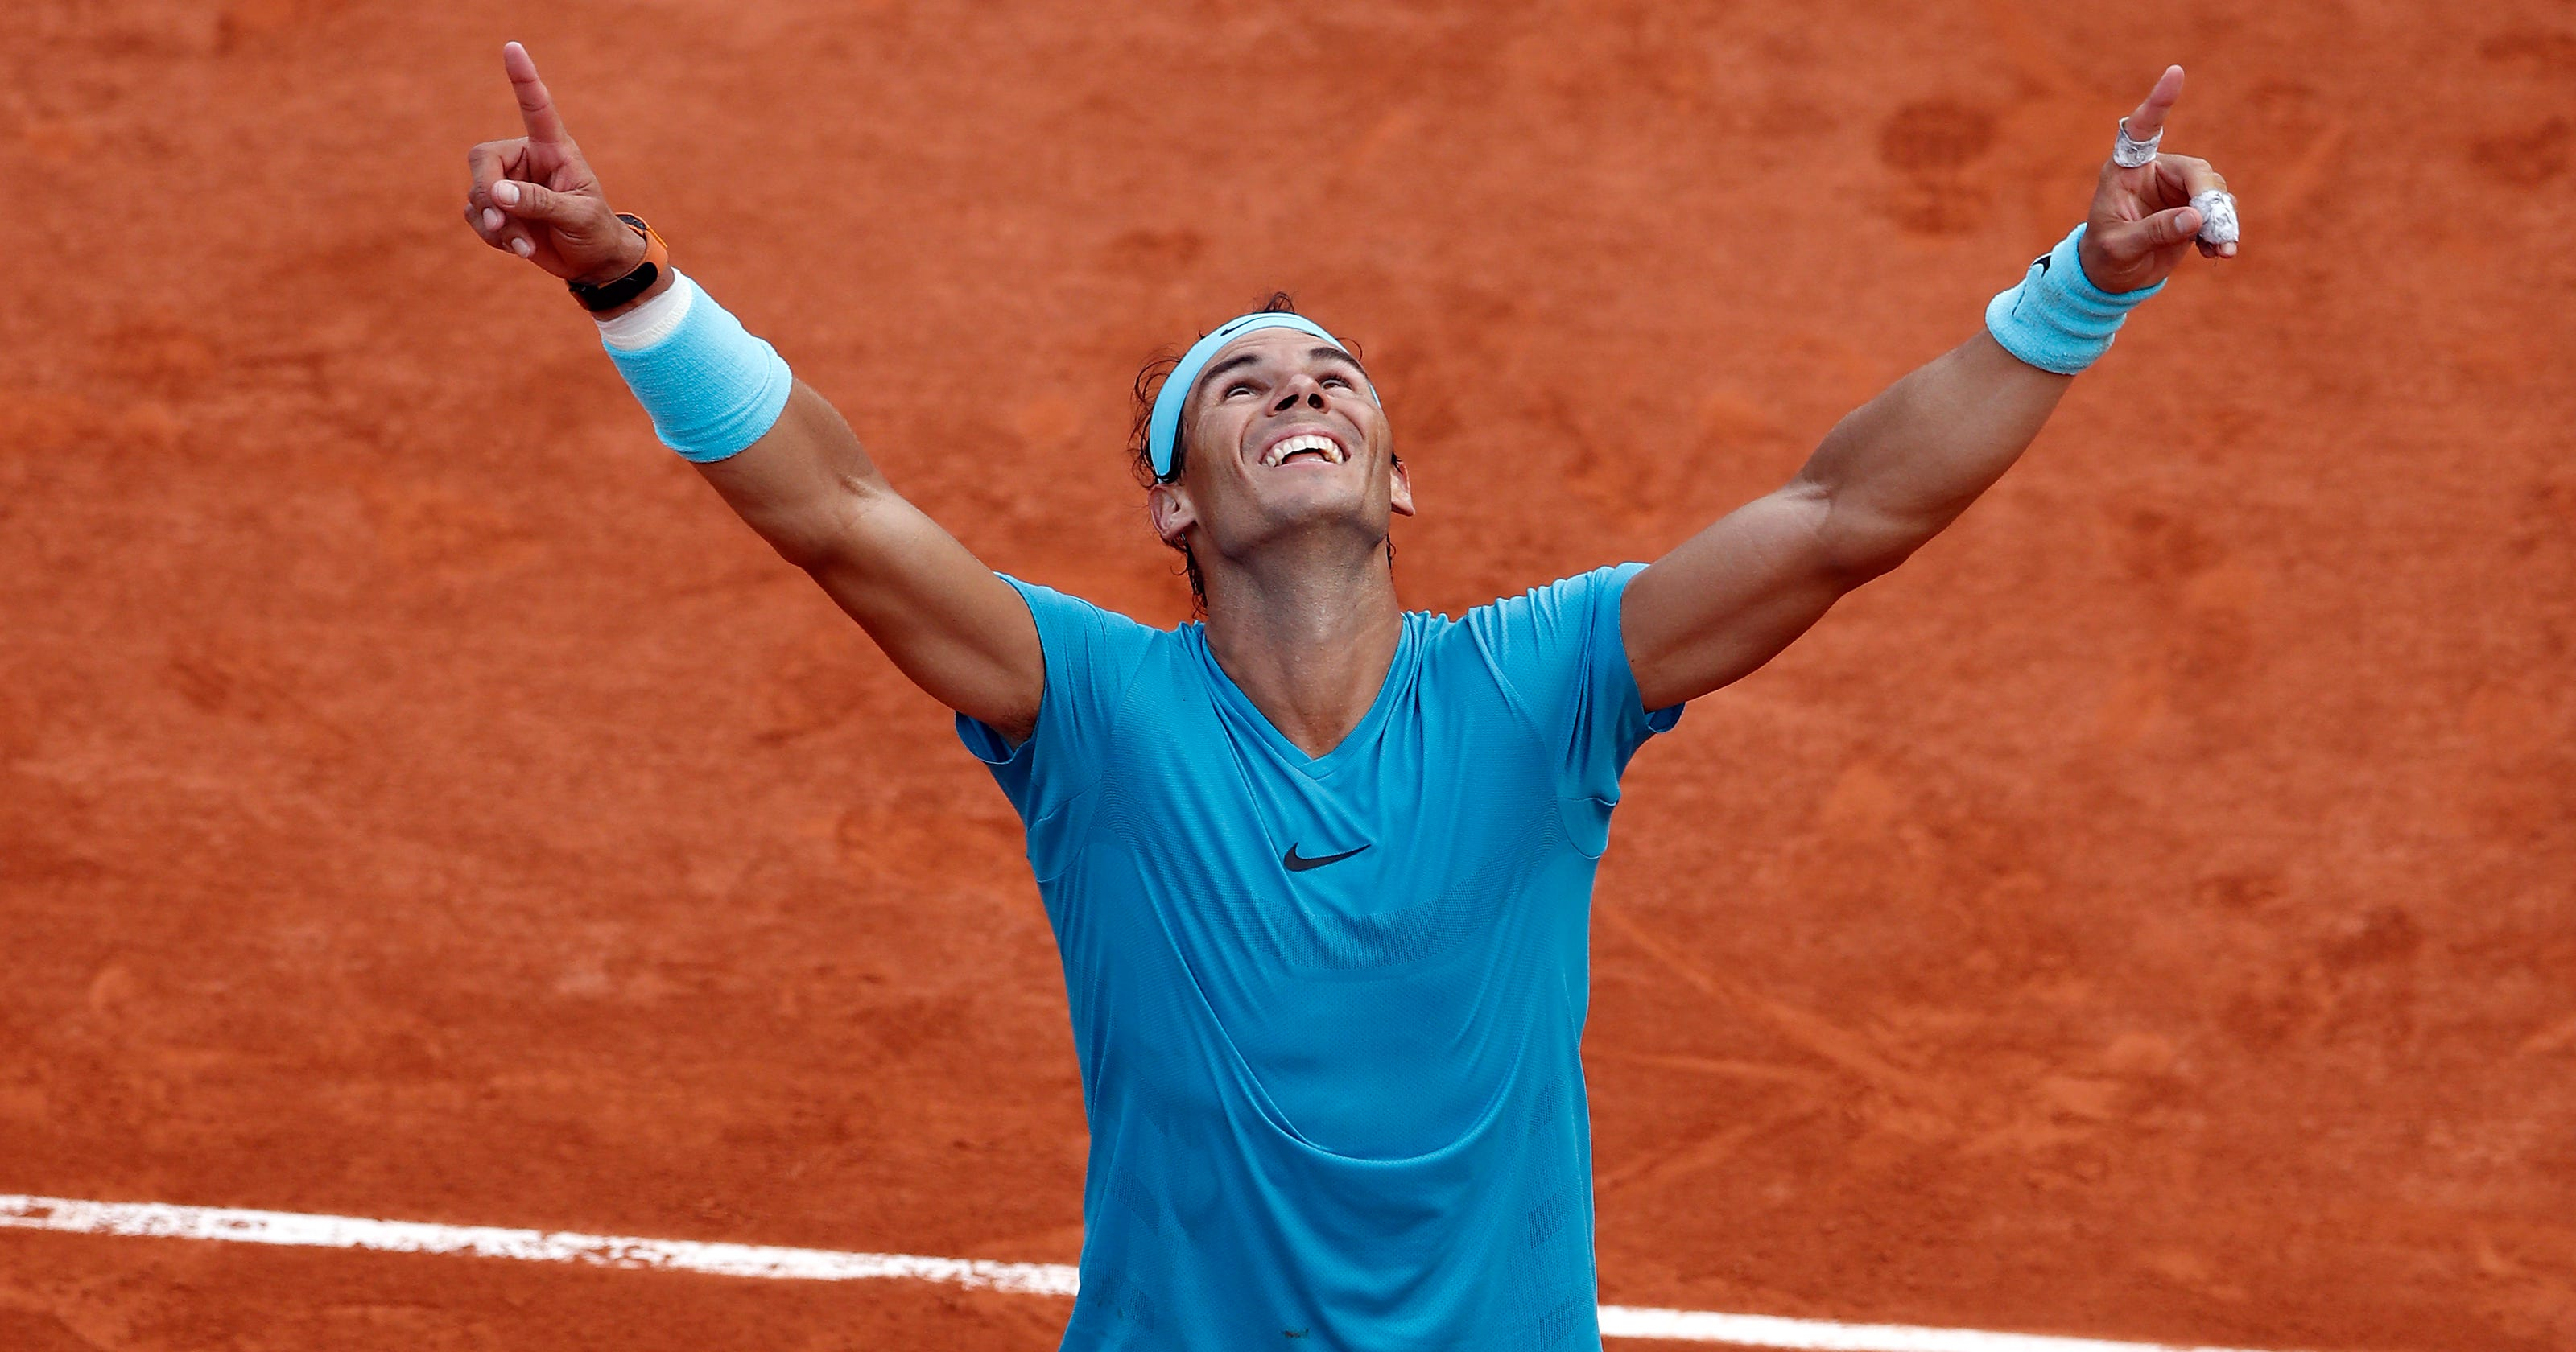 french open - photo #28